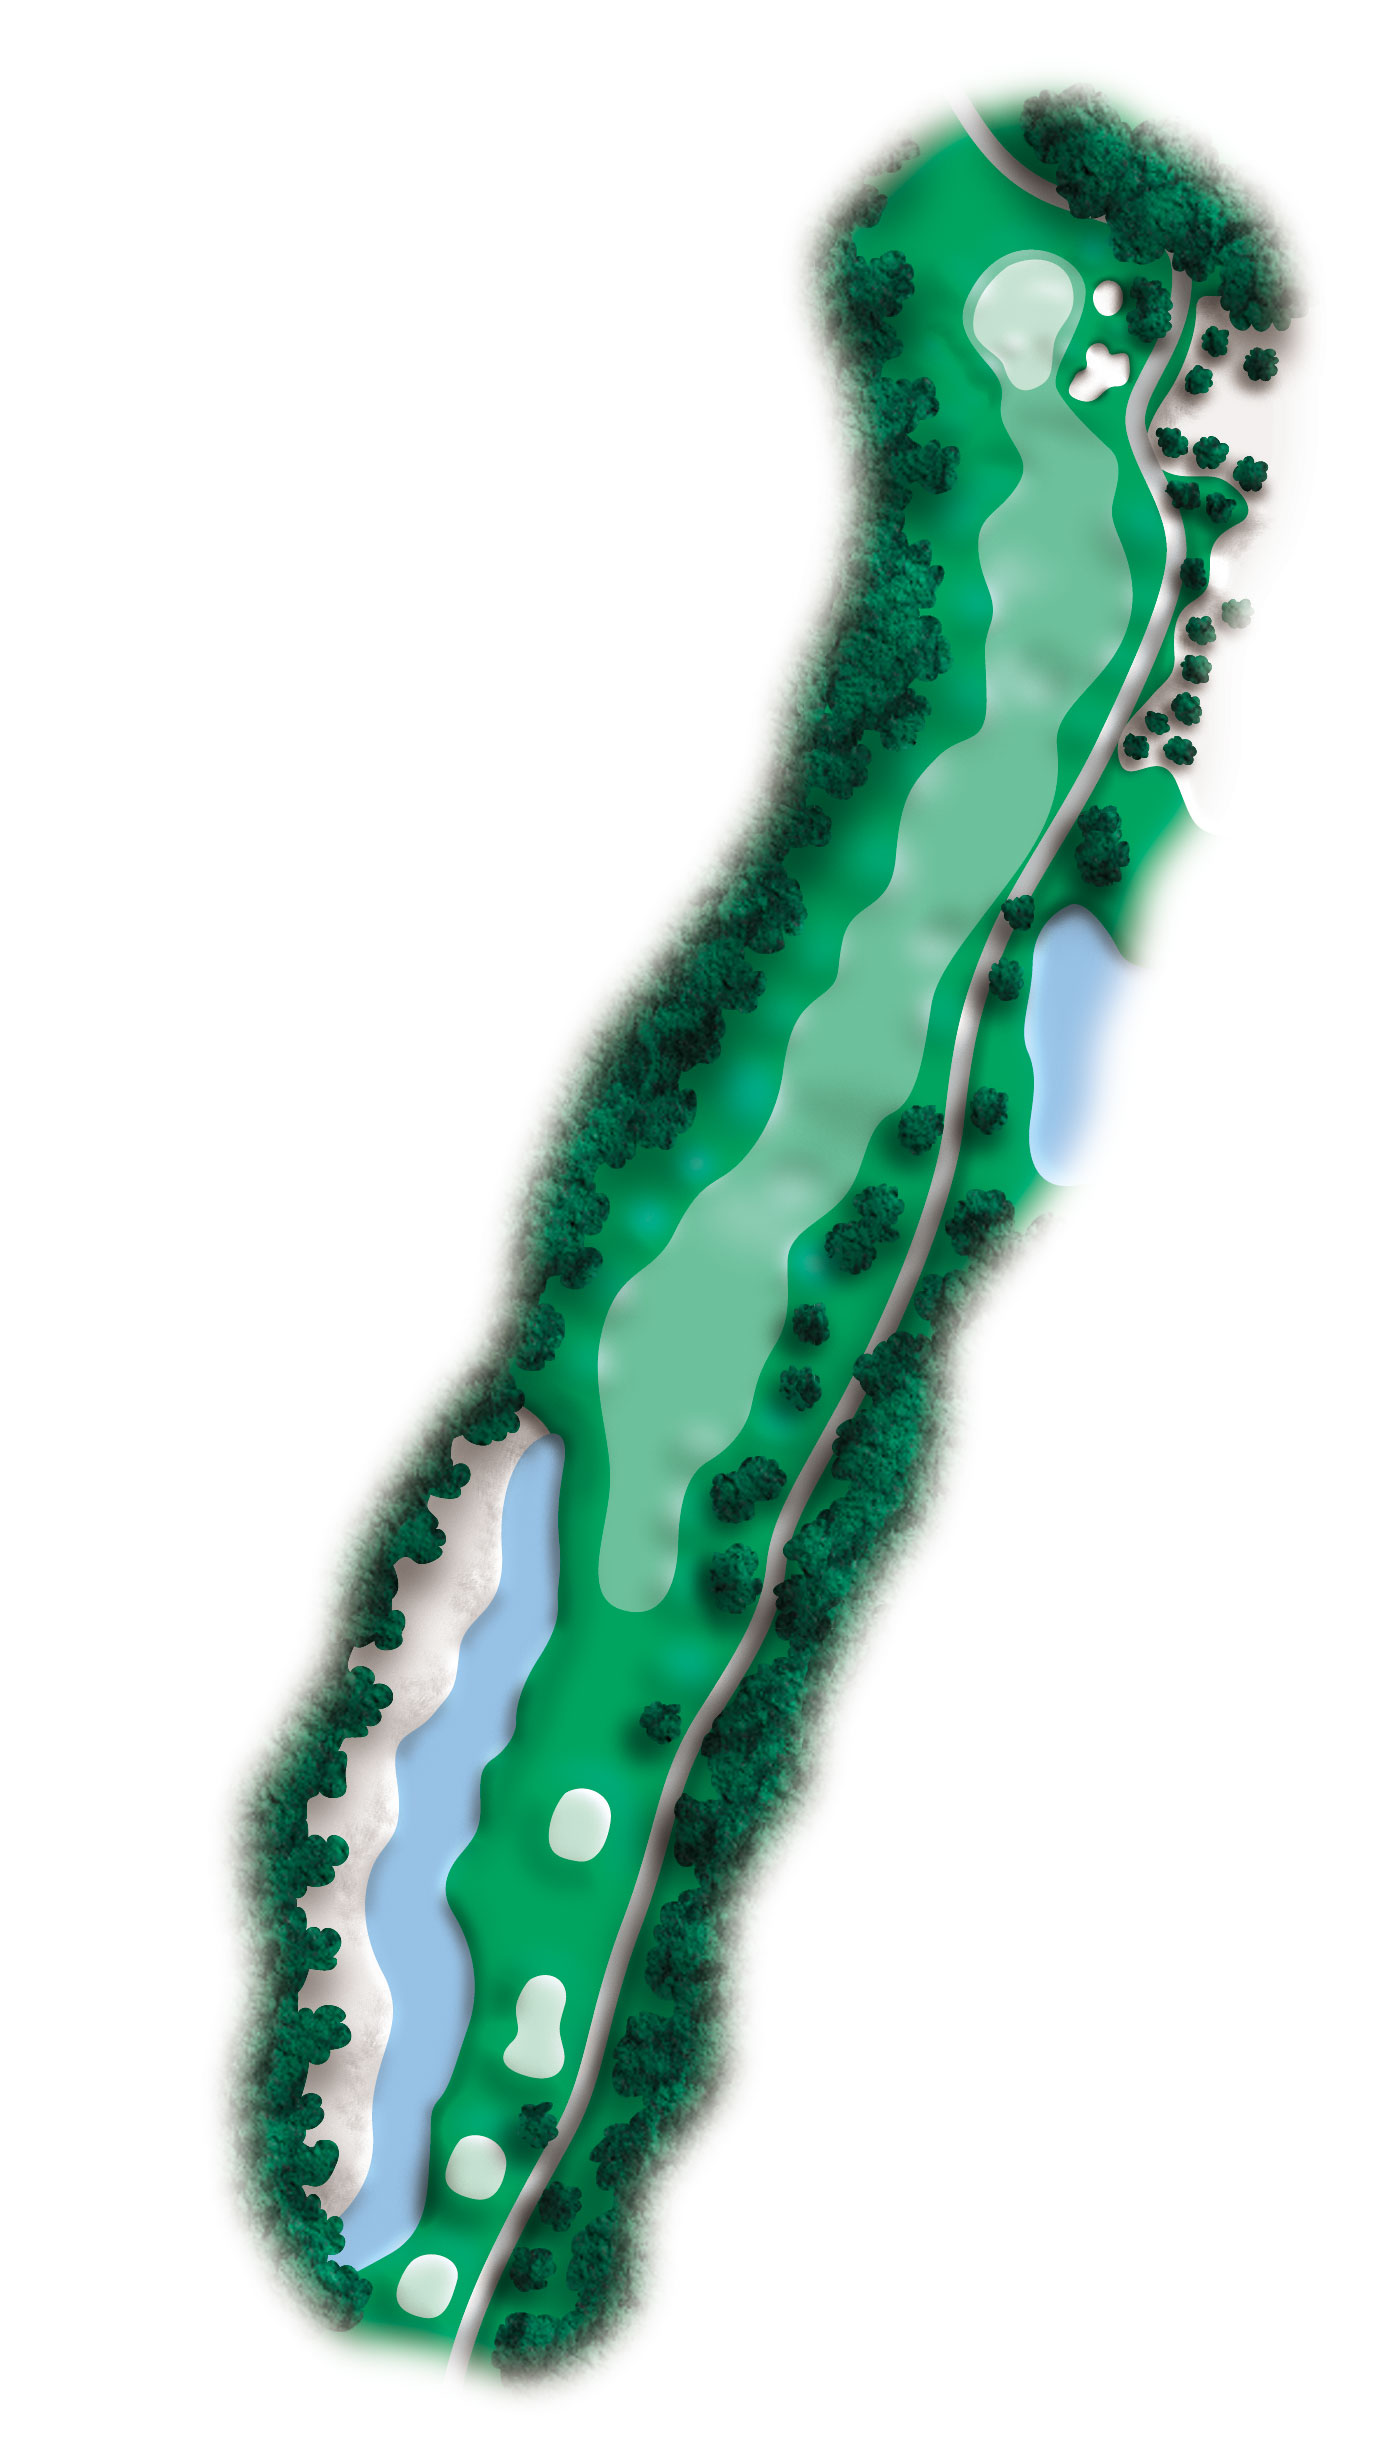 hole 2 diagram